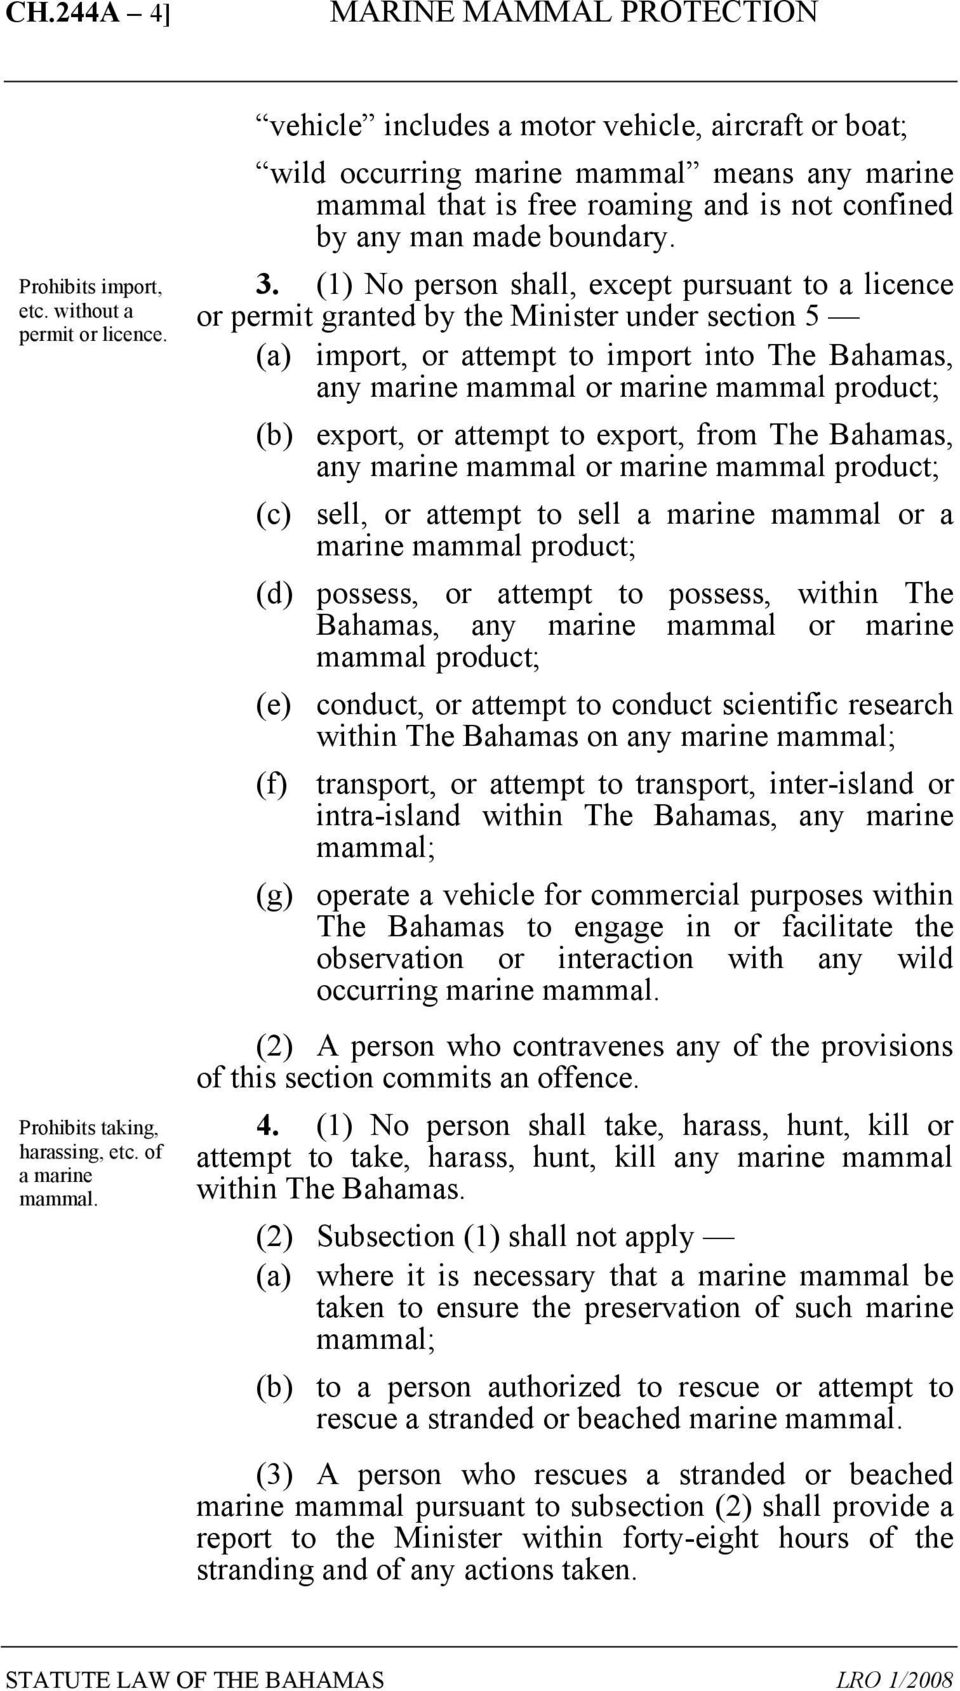 (1) No person shall, except pursuant to a licence or permit granted by the Minister under section 5 (a) import, or attempt to import into The Bahamas, any marine mammal or marine mammal product; (b)